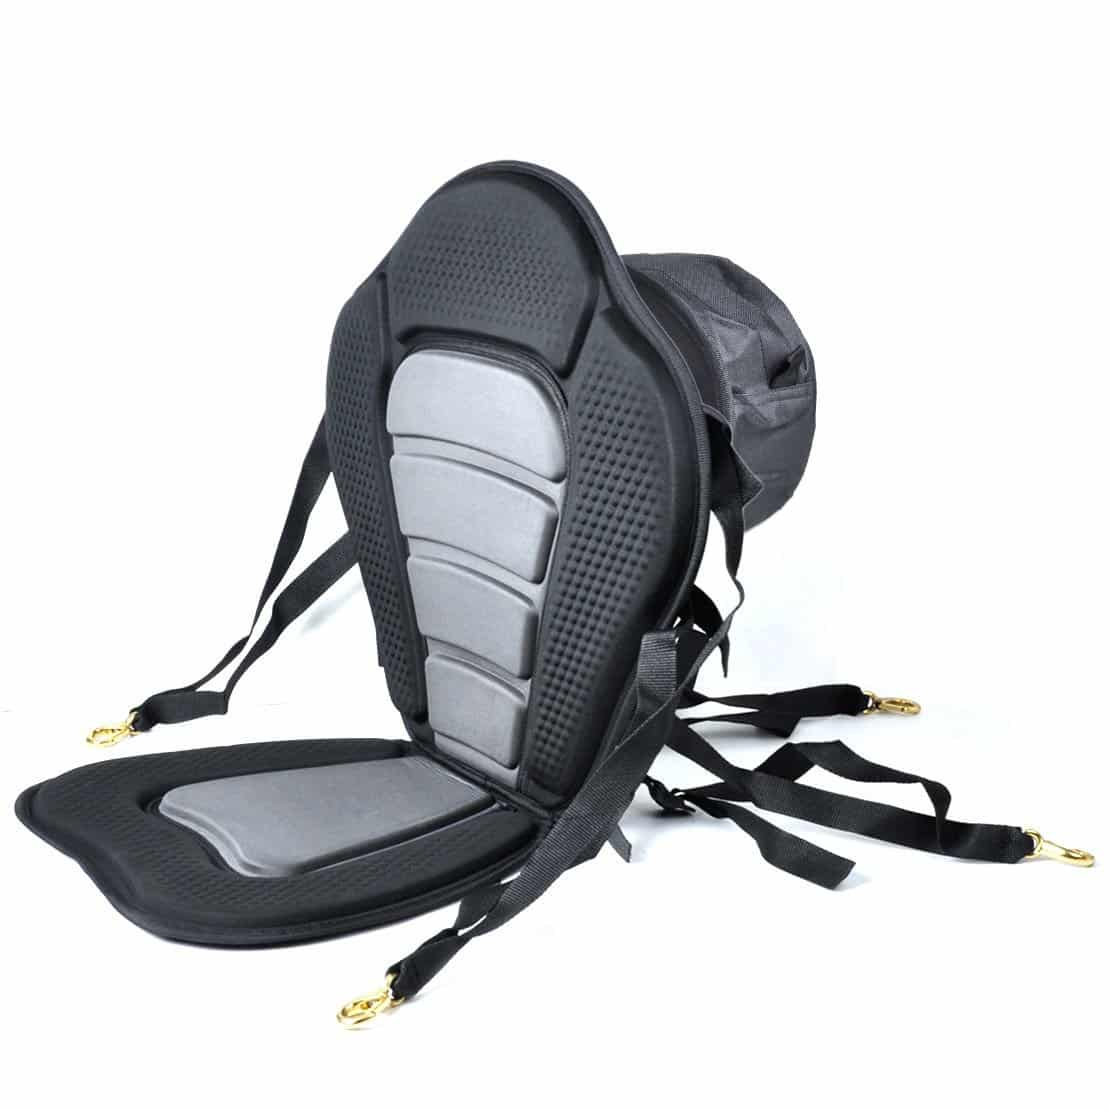 IGuerburn Adjustable Padded Kayak Seat